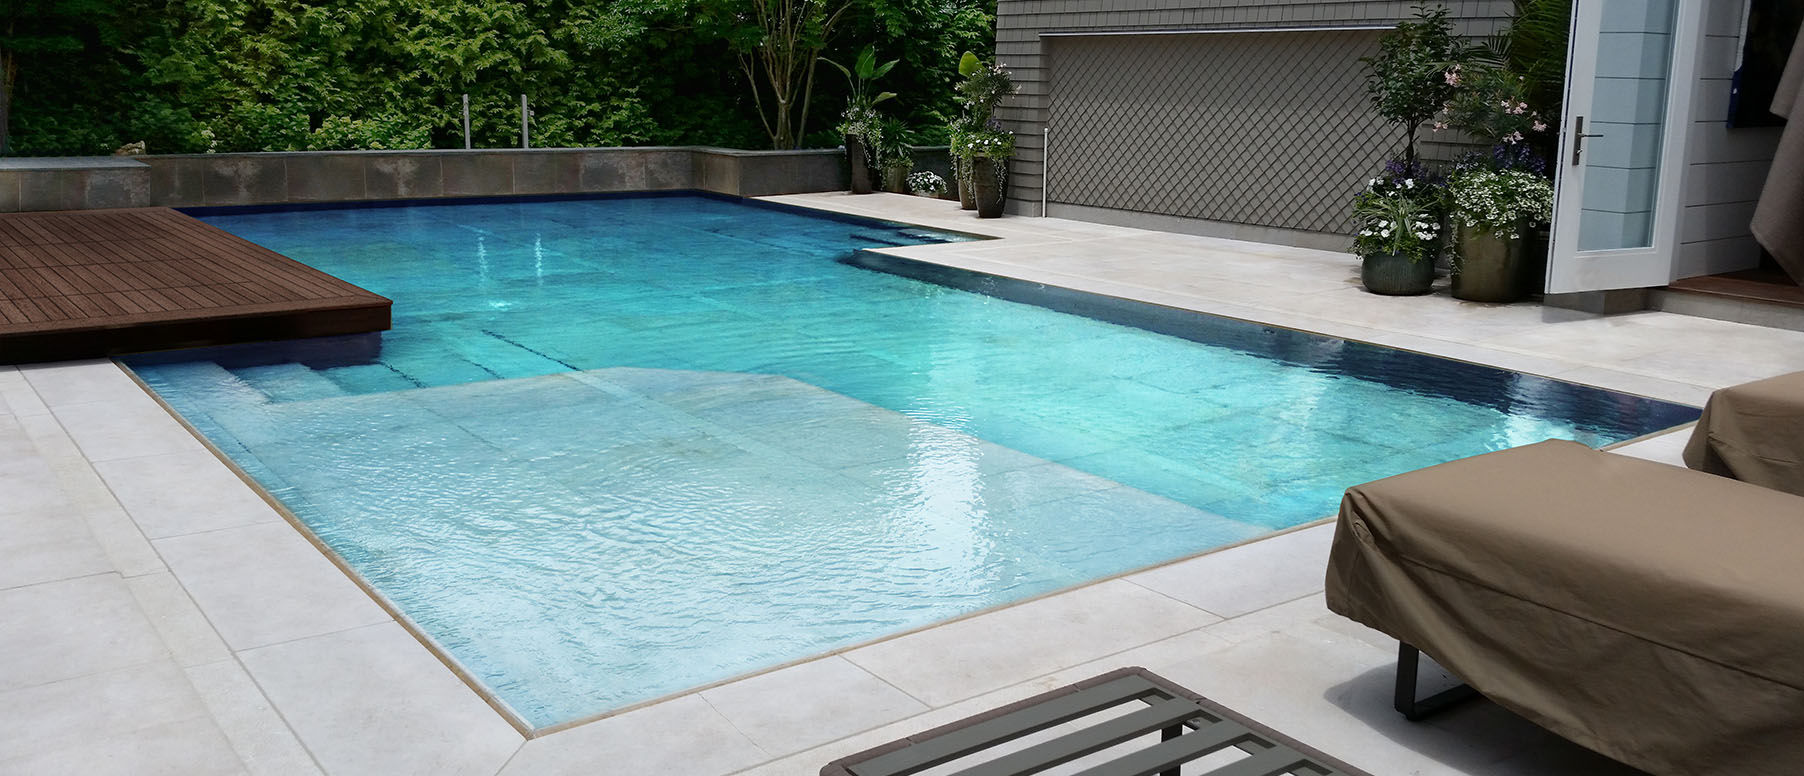 Pool Cover Resource